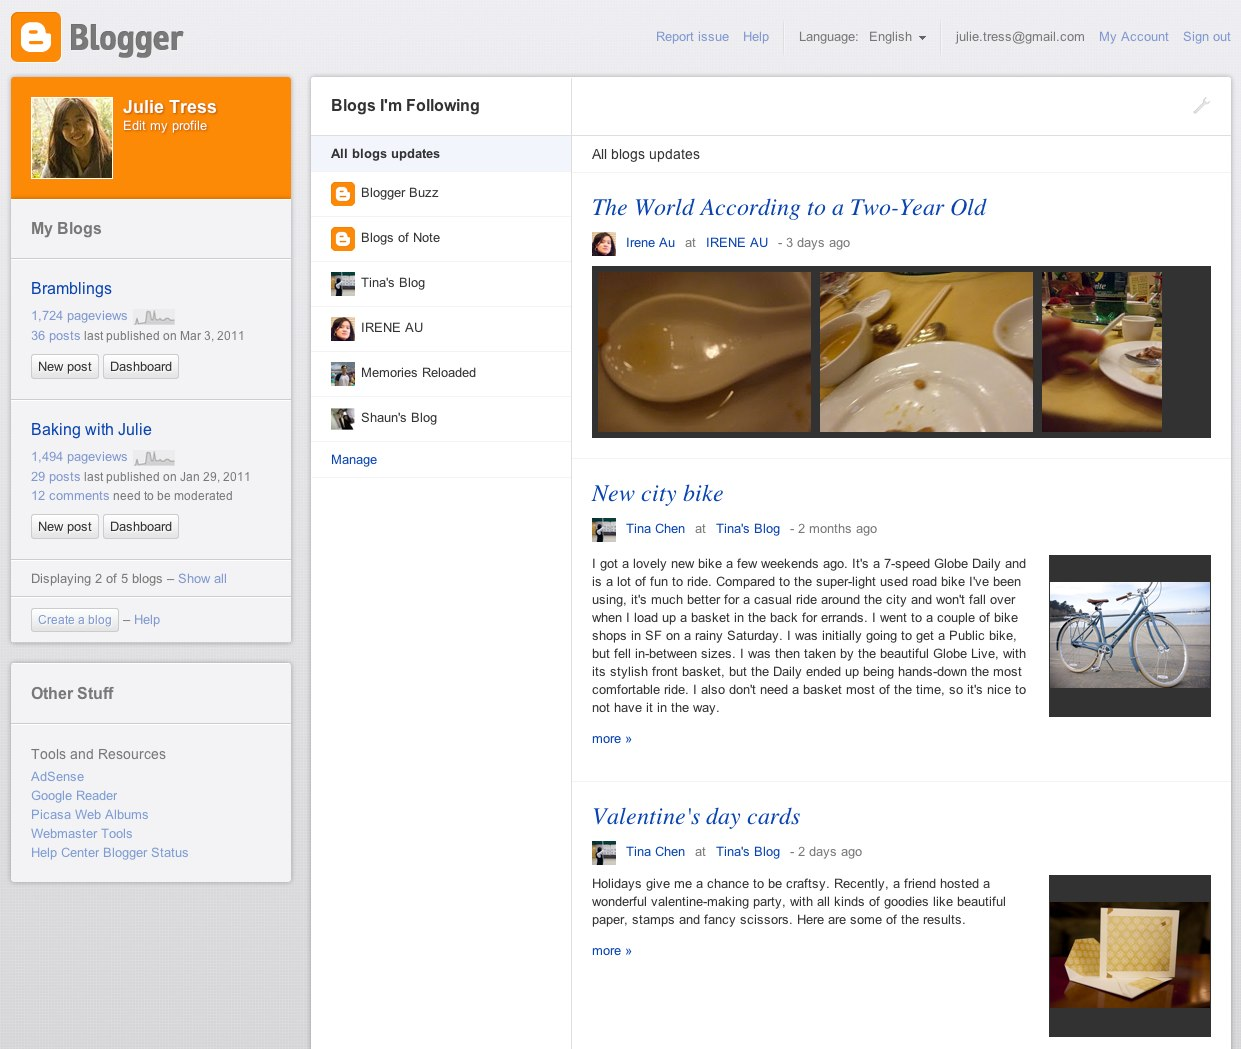 Blog: Official Google Blog: What's New With Blogger